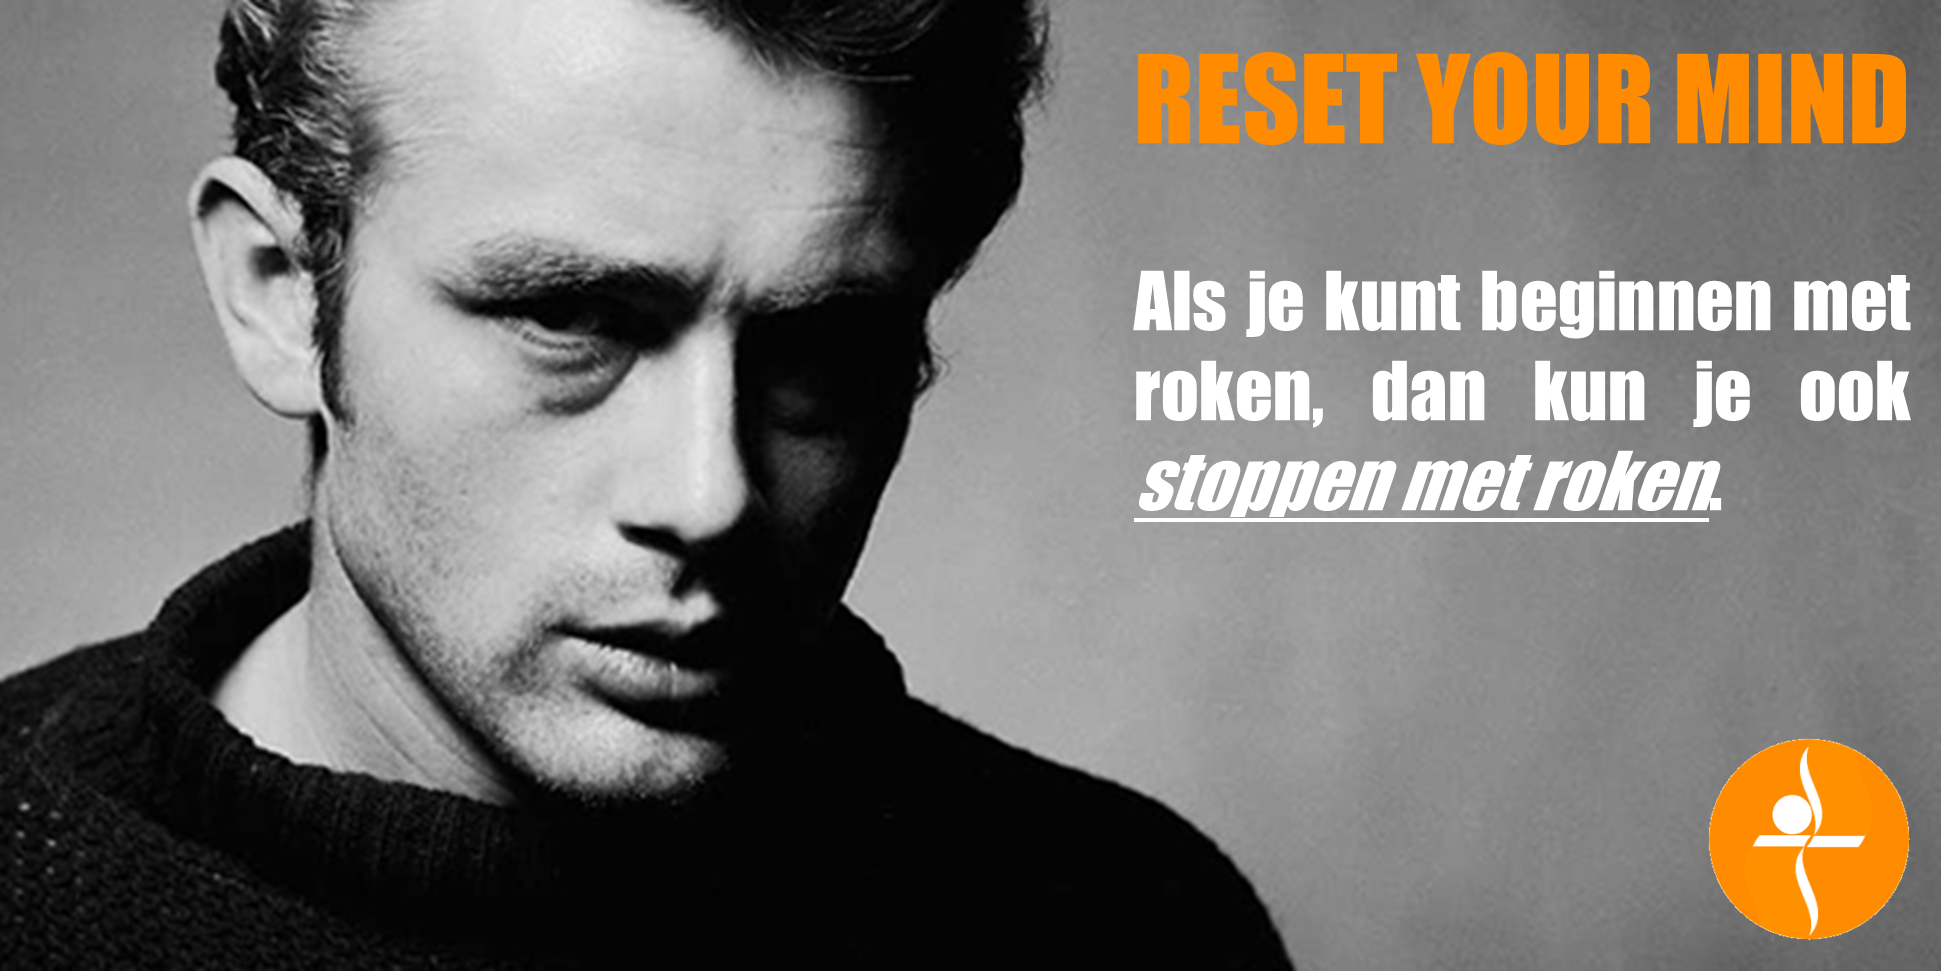 gedragsverandering? reset your mind!